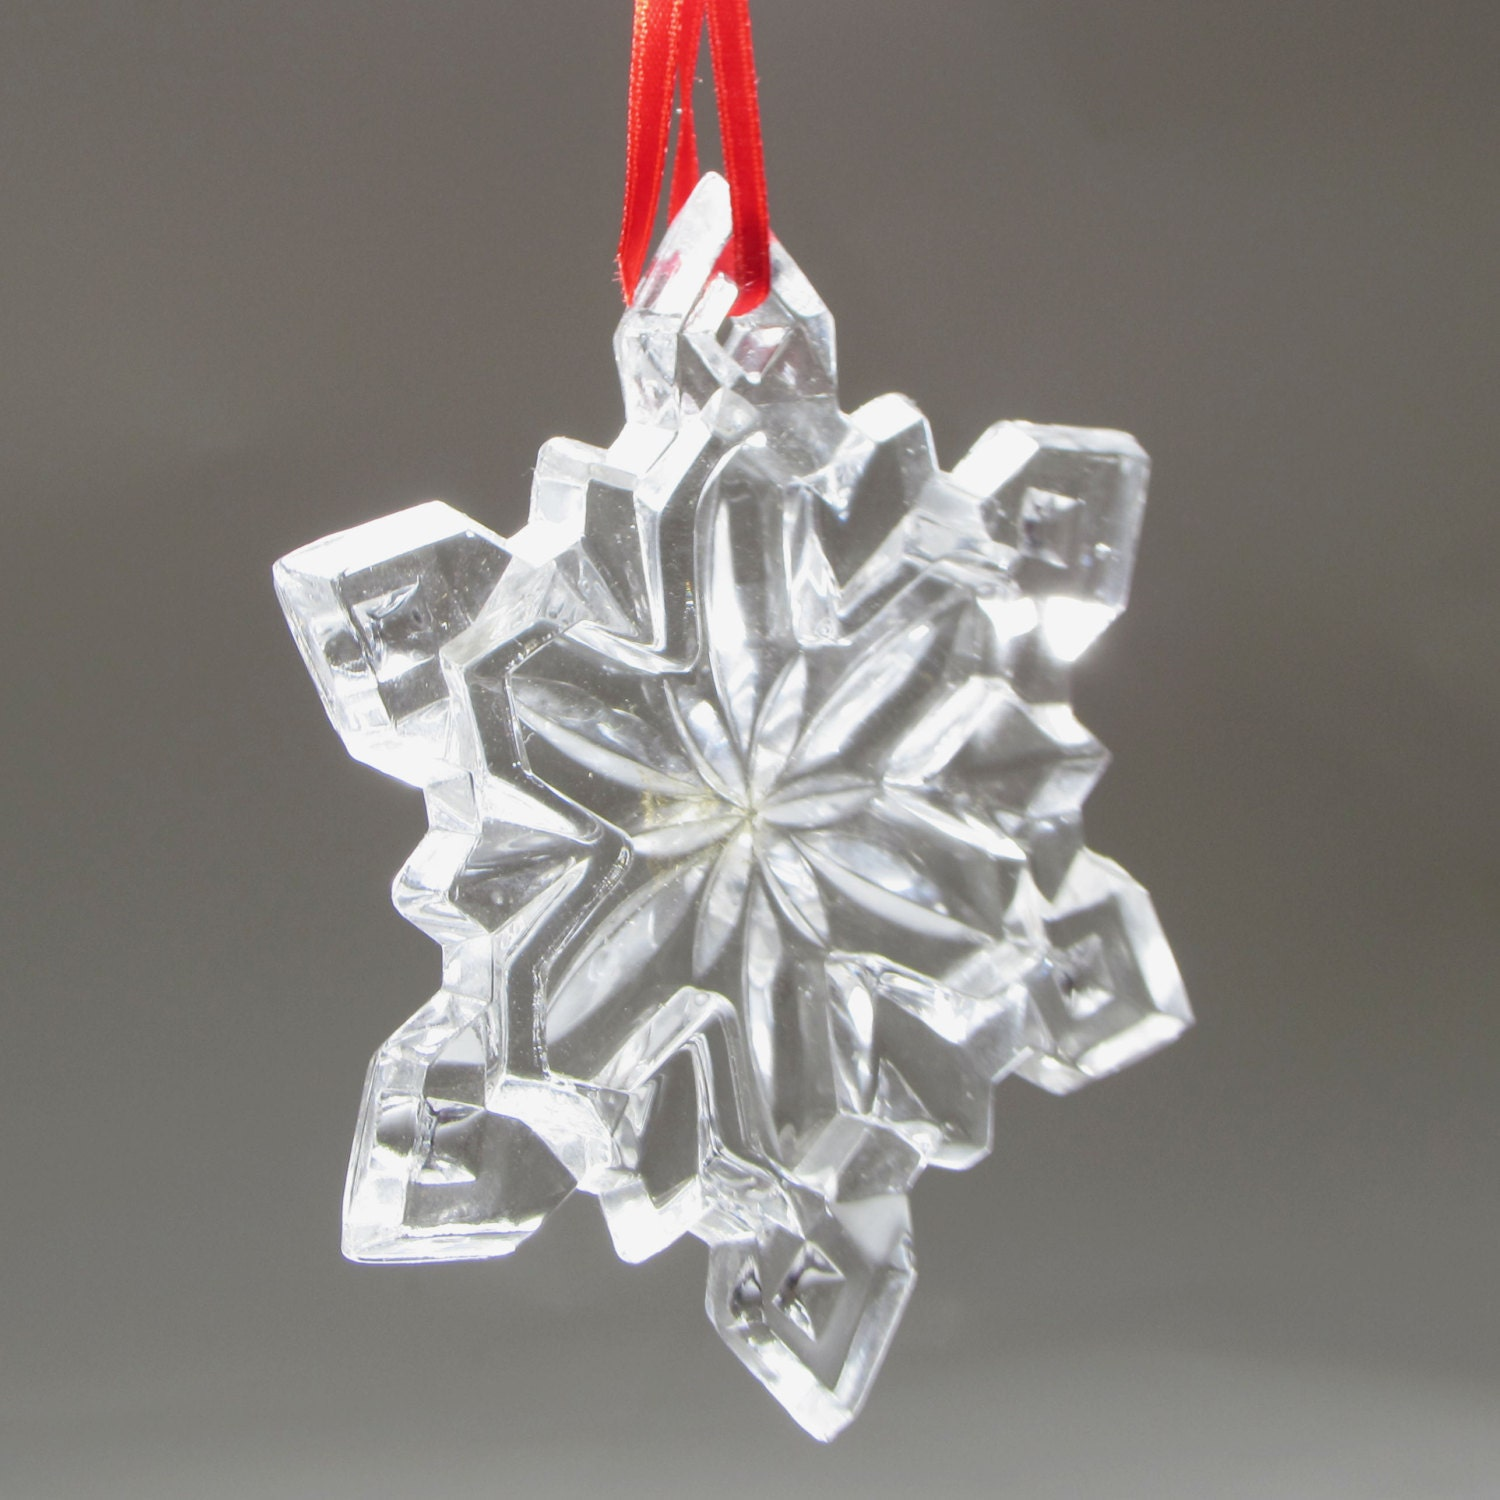 glass snowflake christmas tree ornament star 3 1 2 by whatnotgems. Black Bedroom Furniture Sets. Home Design Ideas